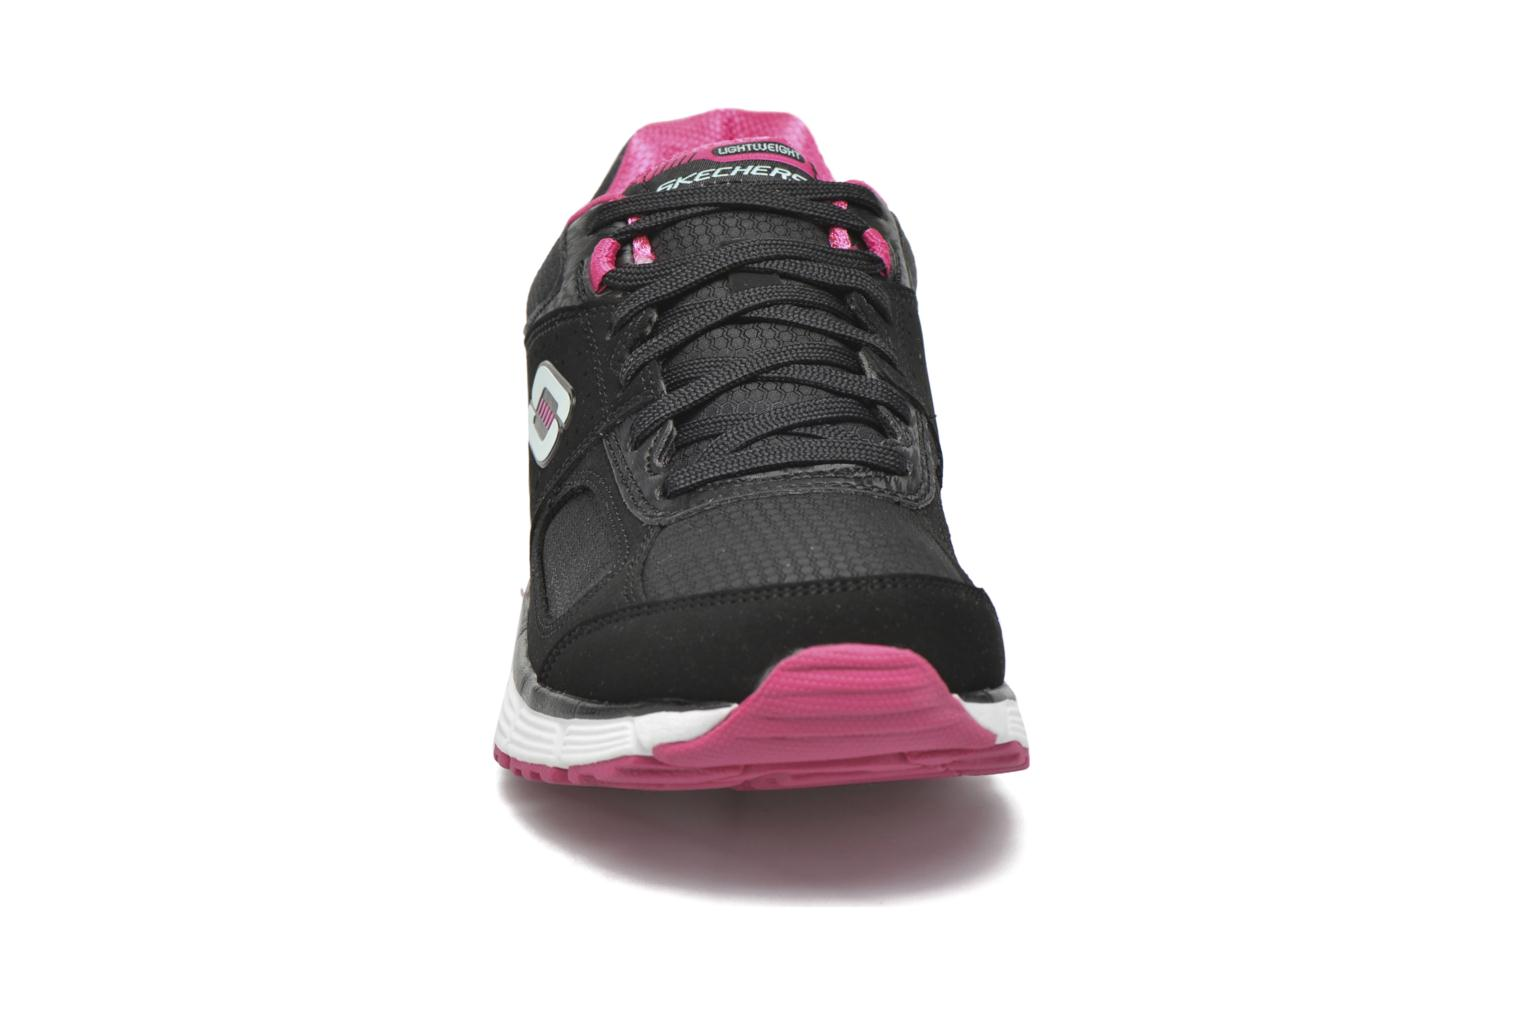 Agility - Ramp Up Black/ Hot Pink